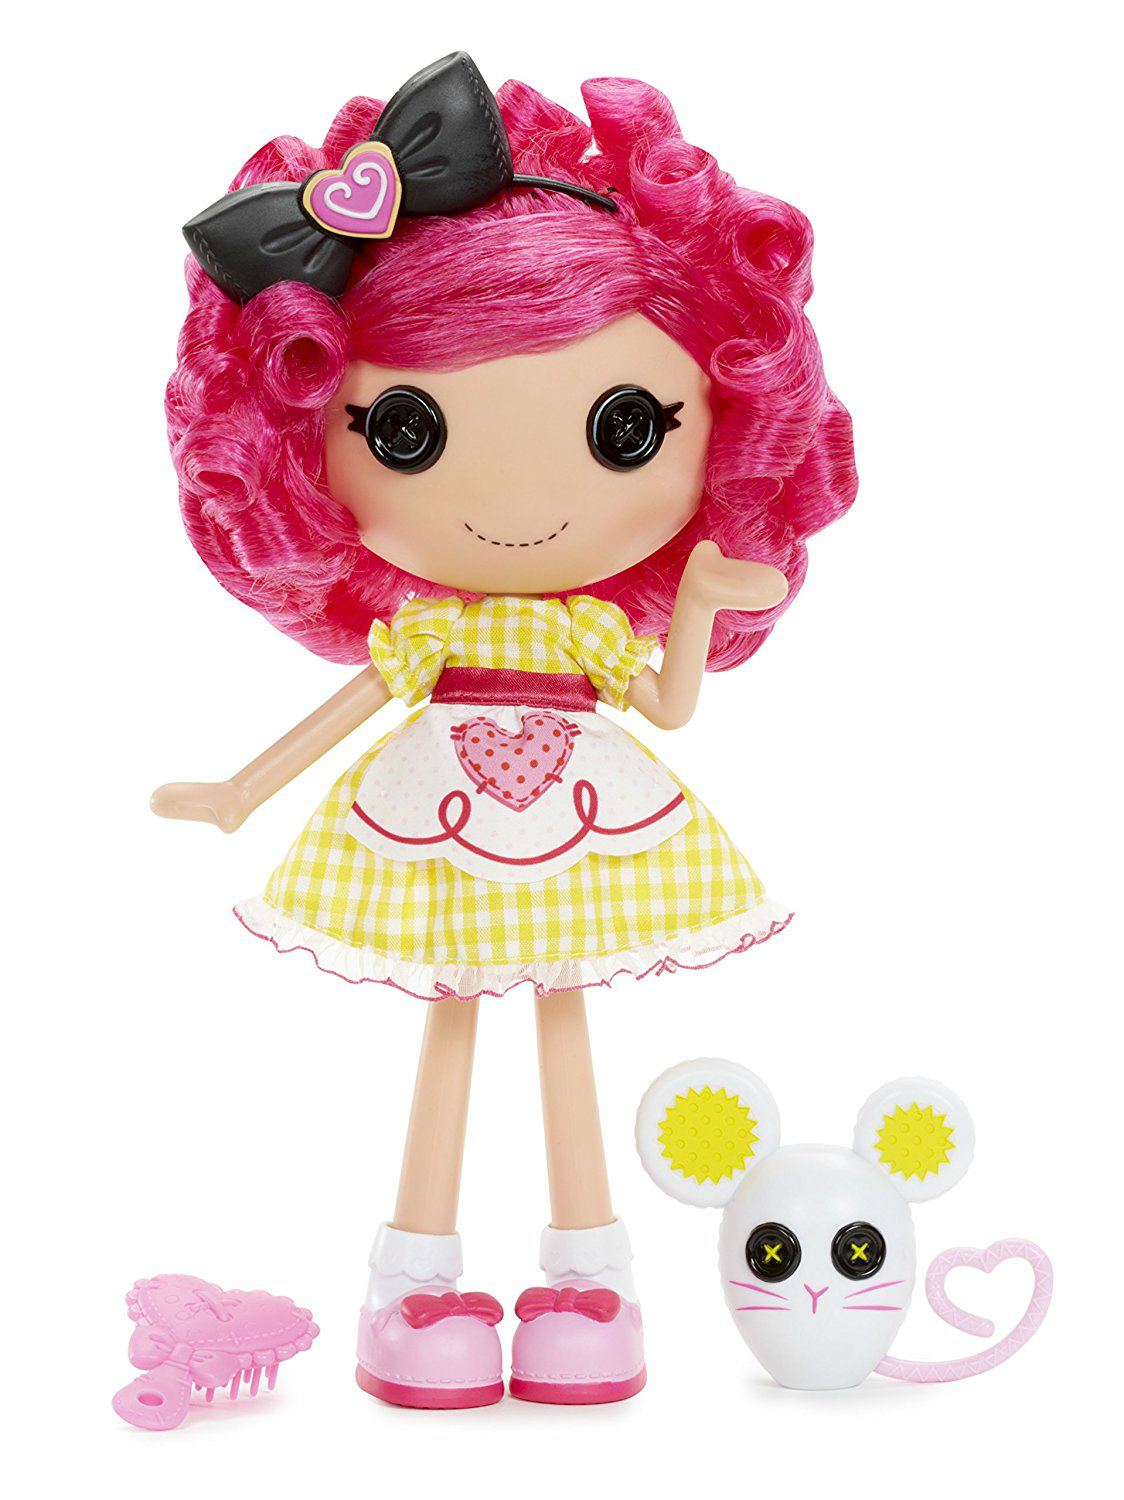 Lalaloopsy Toy Food : Category interest cooking food lalaloopsy land wiki